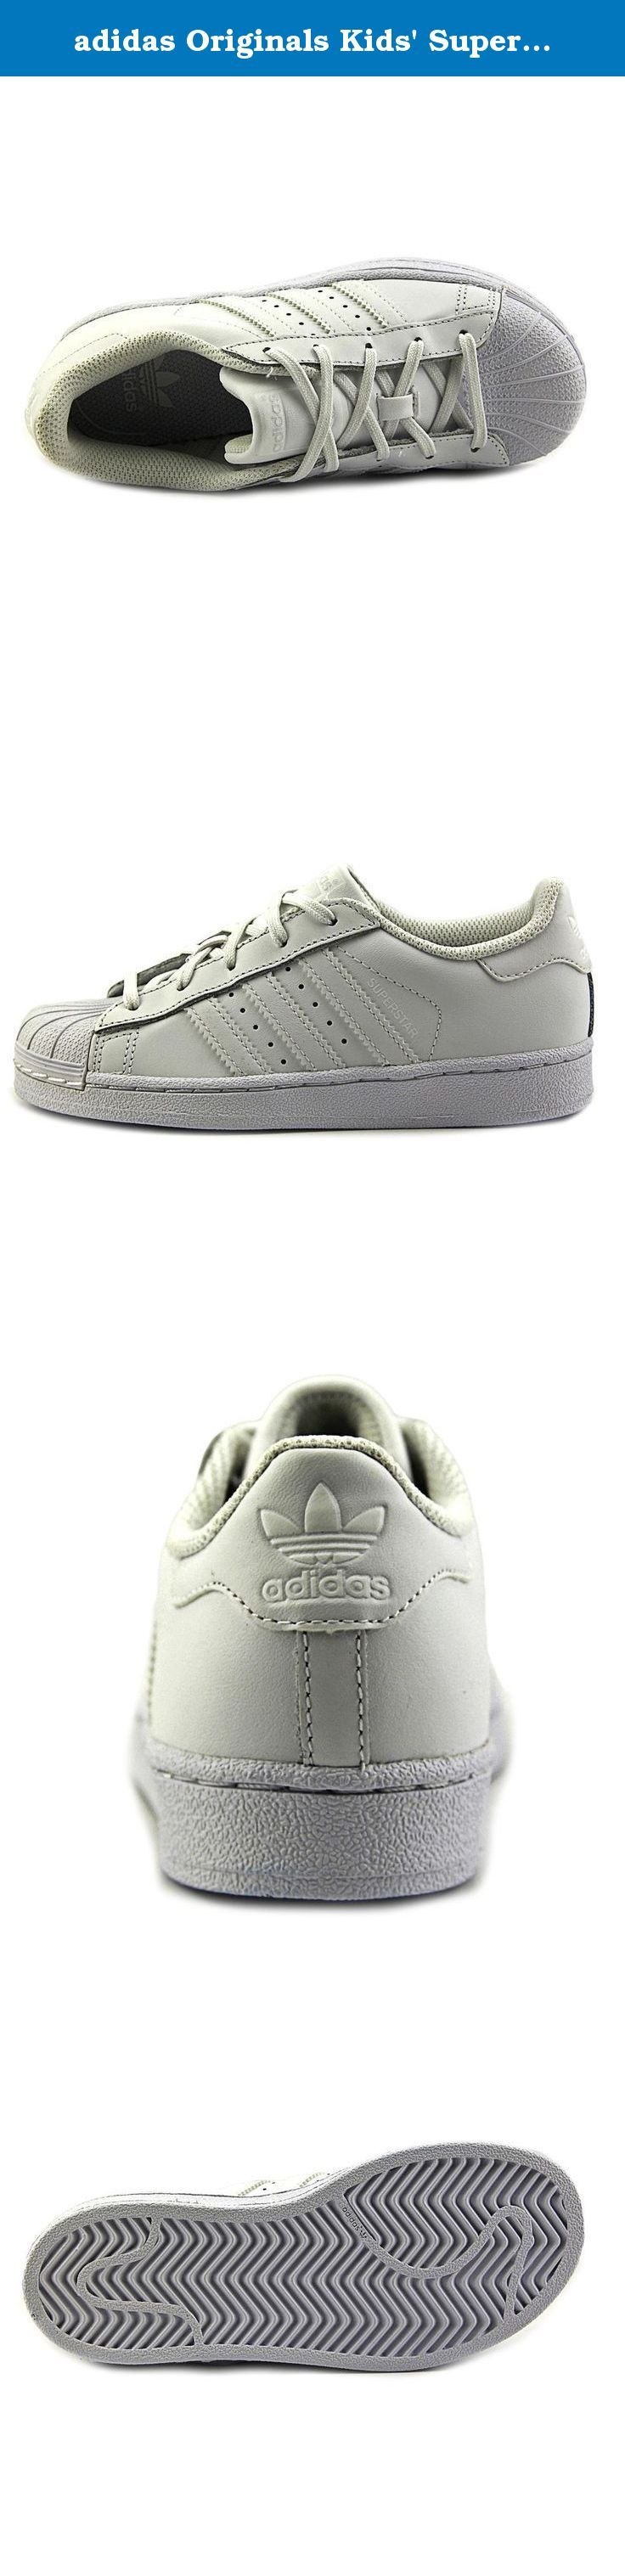 adidas Originals Kids' Superstar Foundation EL C Skate Shoe, White/White/White, 12 M US Little Kid. The clean lines and effortless style of the original adidas Superstar get scaled down for tiny feet. These toddlers' shoes feature a leather upper trimmed in all the details that made this shoe an icon. Hook-and-loop closures make for easy on and off.